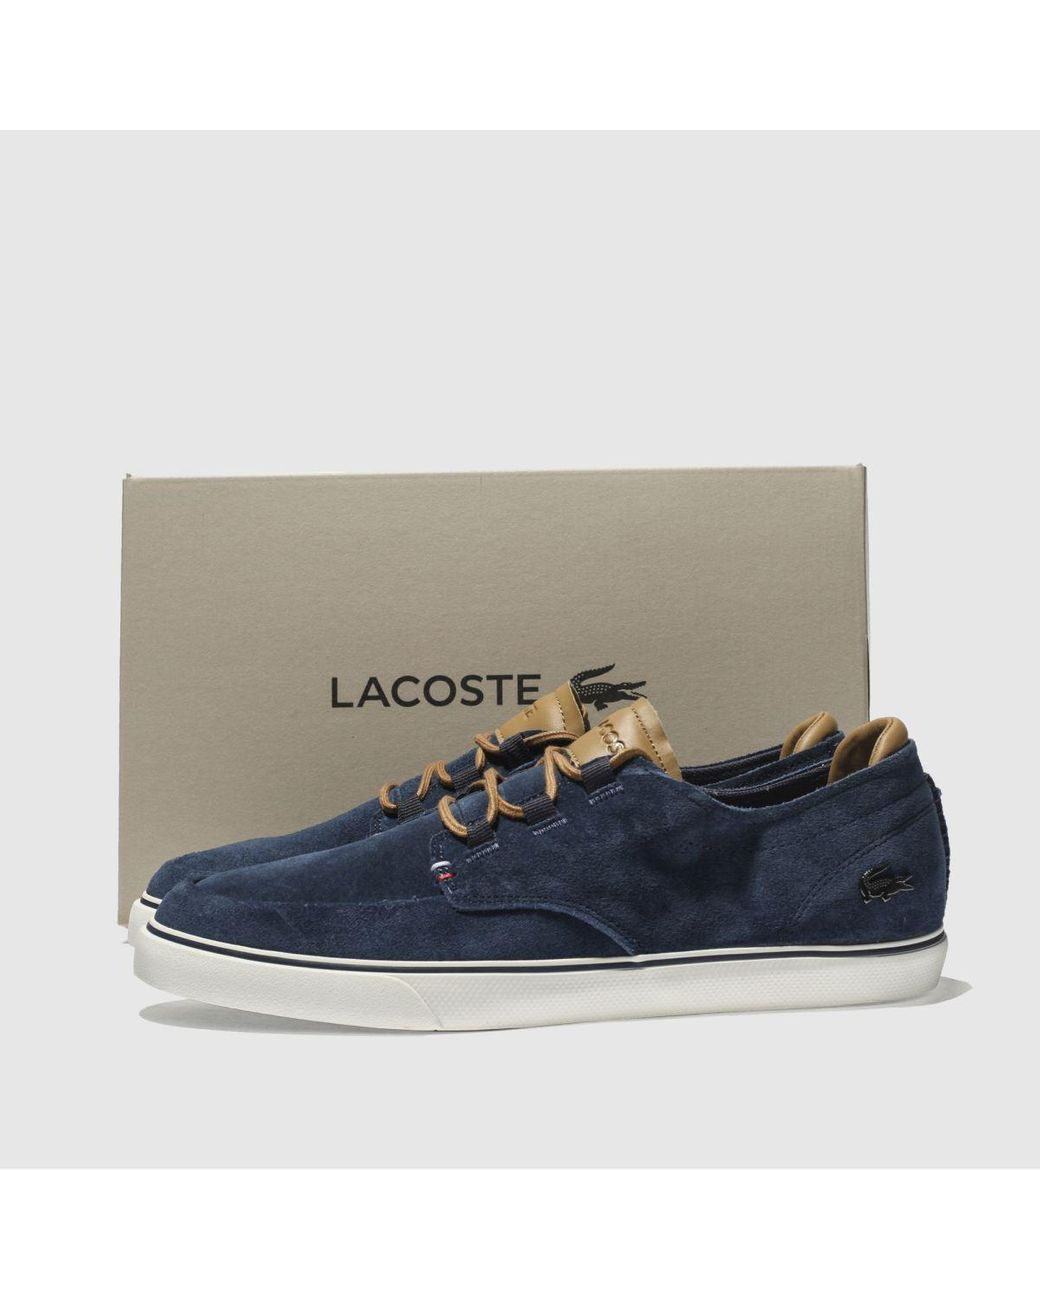 Lacoste Suede Esparre Deck Trainers in